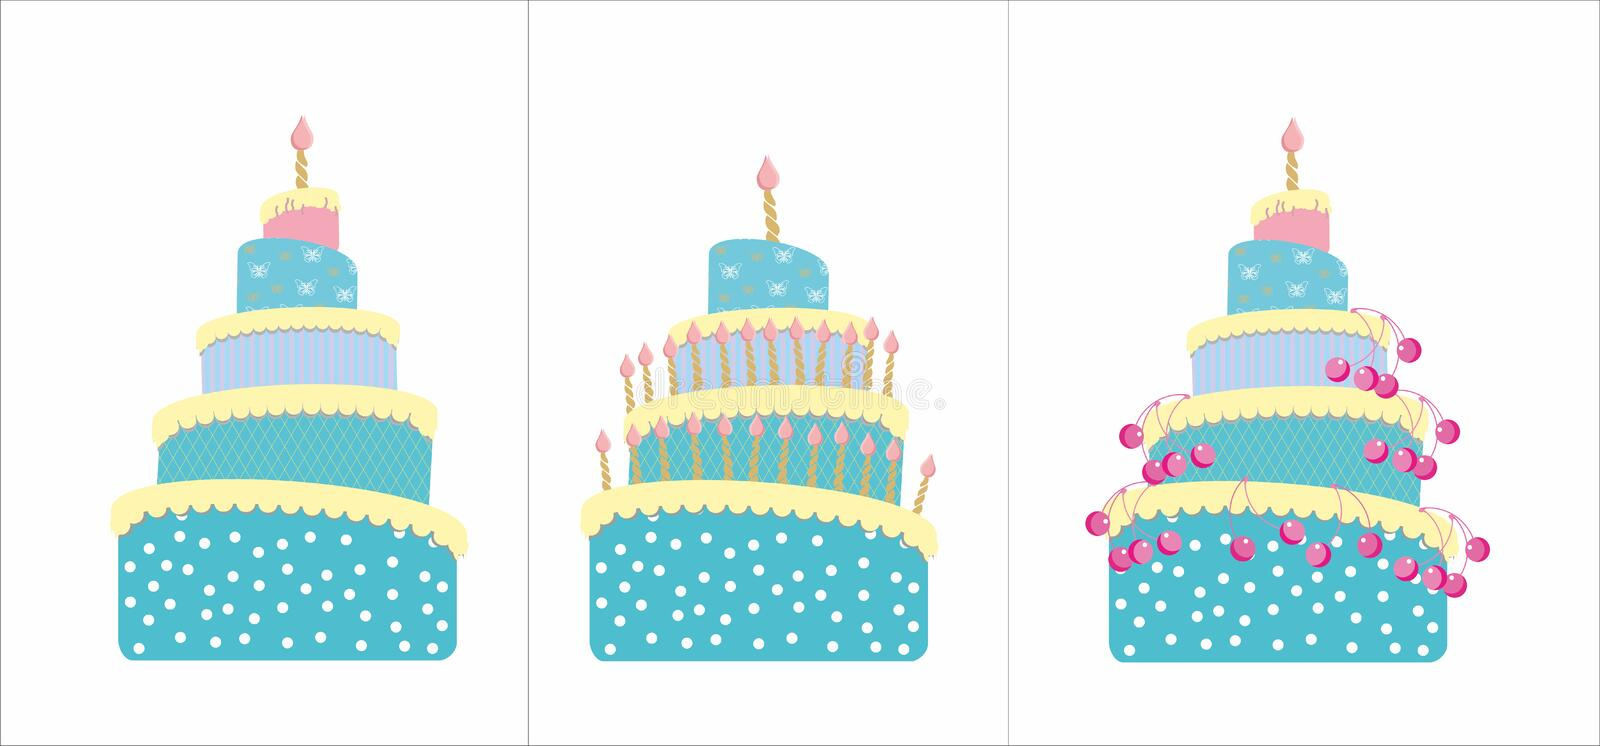 Cakes with cherry and candles stock image